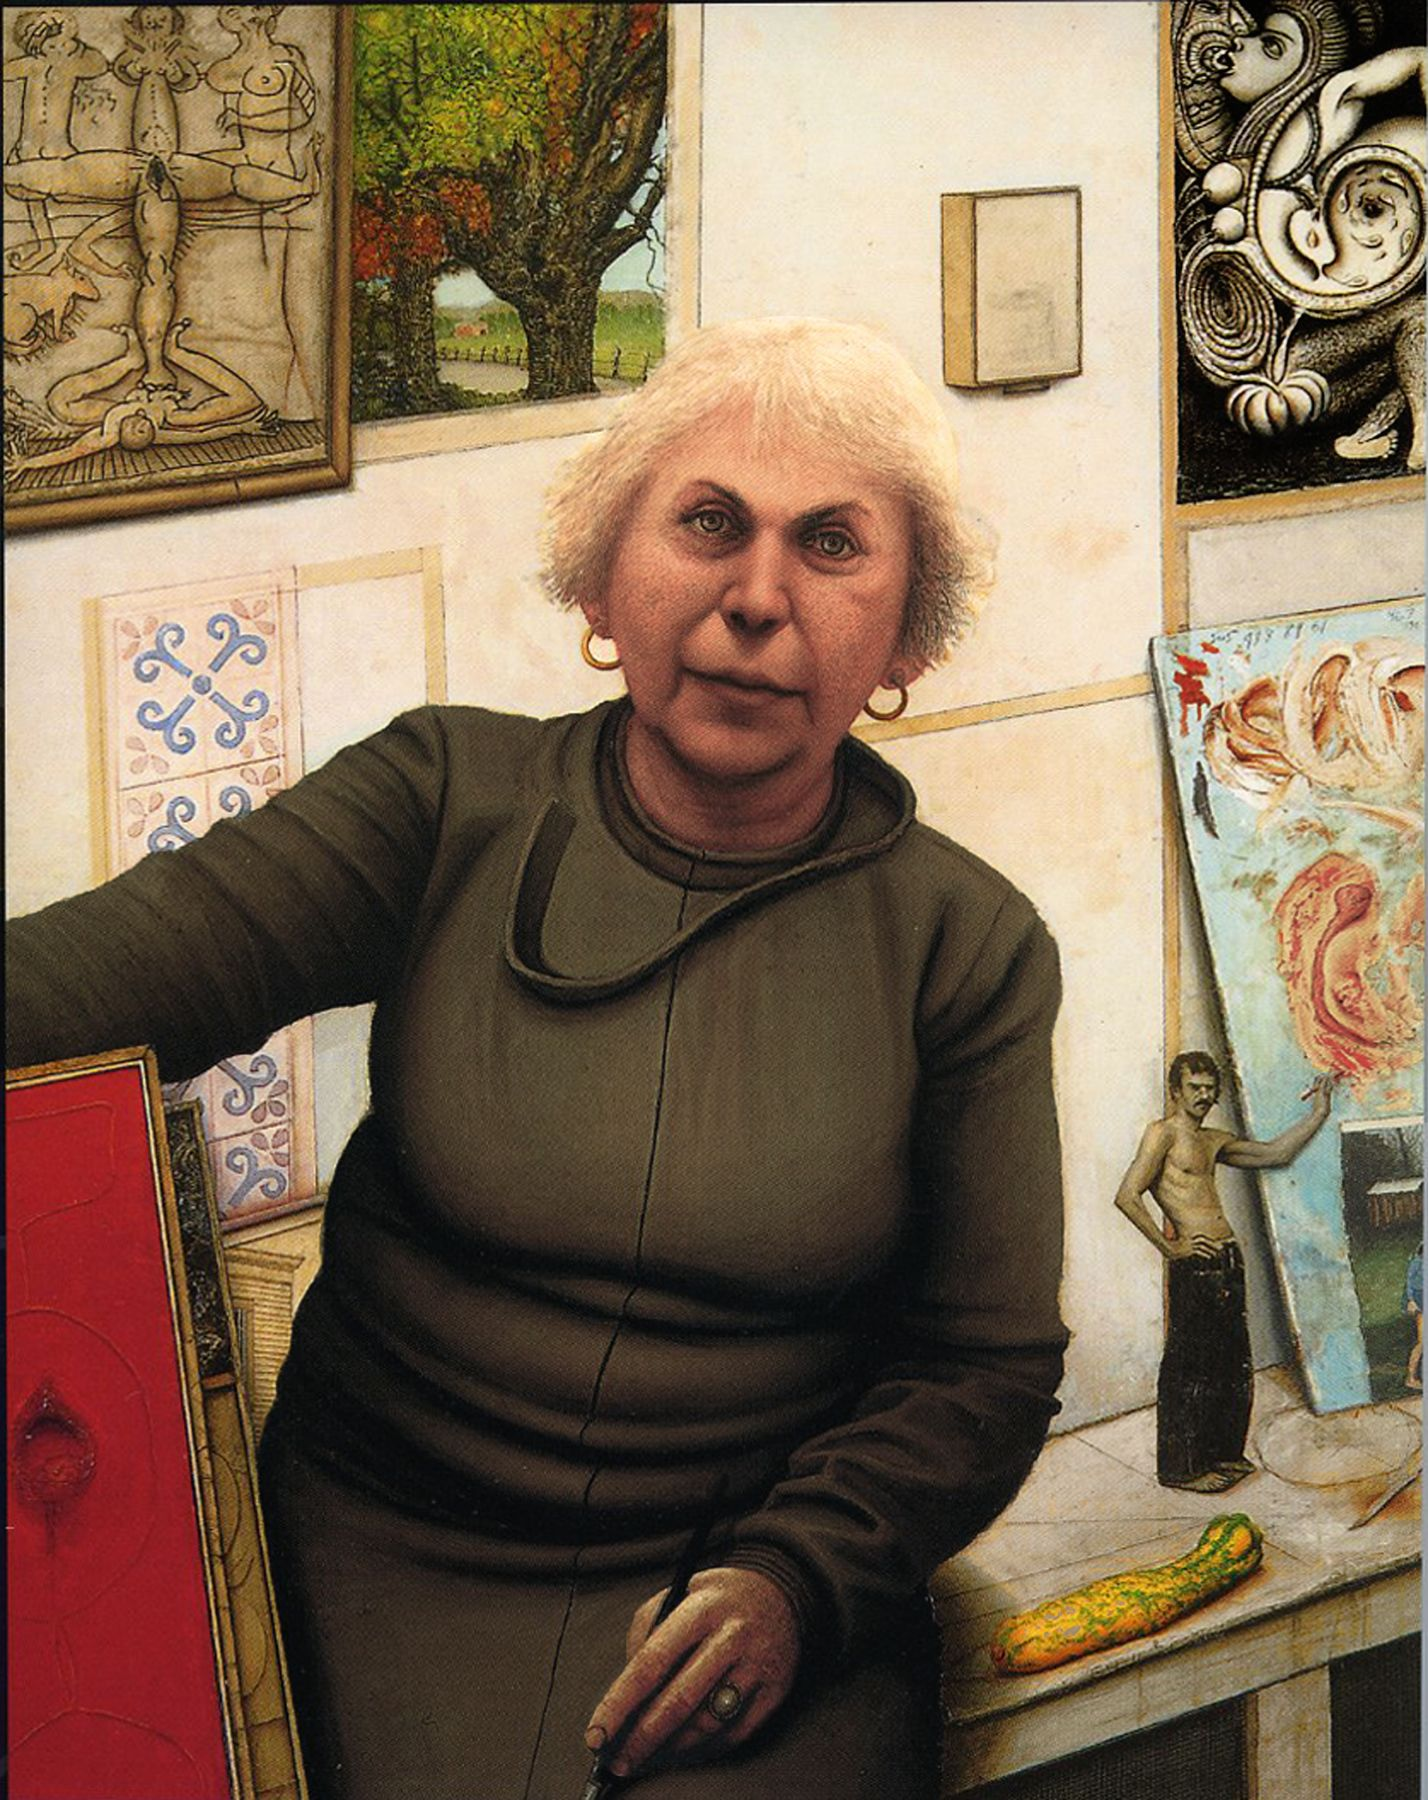 Gregory Gillespie, Portrait of Bella, 1987, oil on panel, 47 3/4 x 38 inches